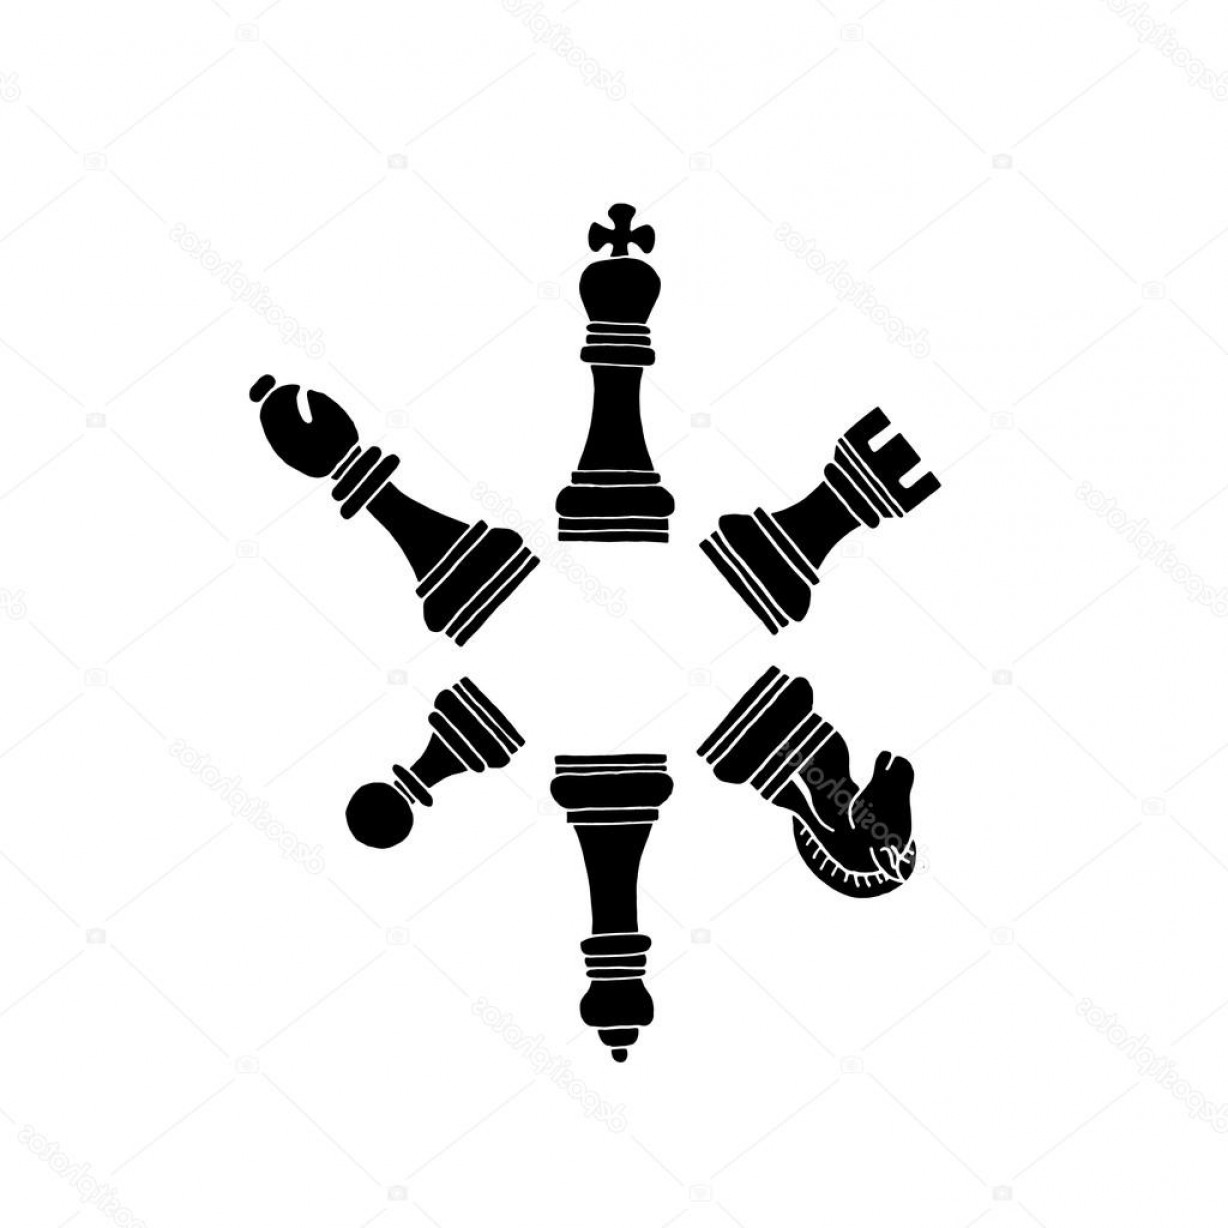 Chess Vector Background: Stock Illustration Chess On A White Background